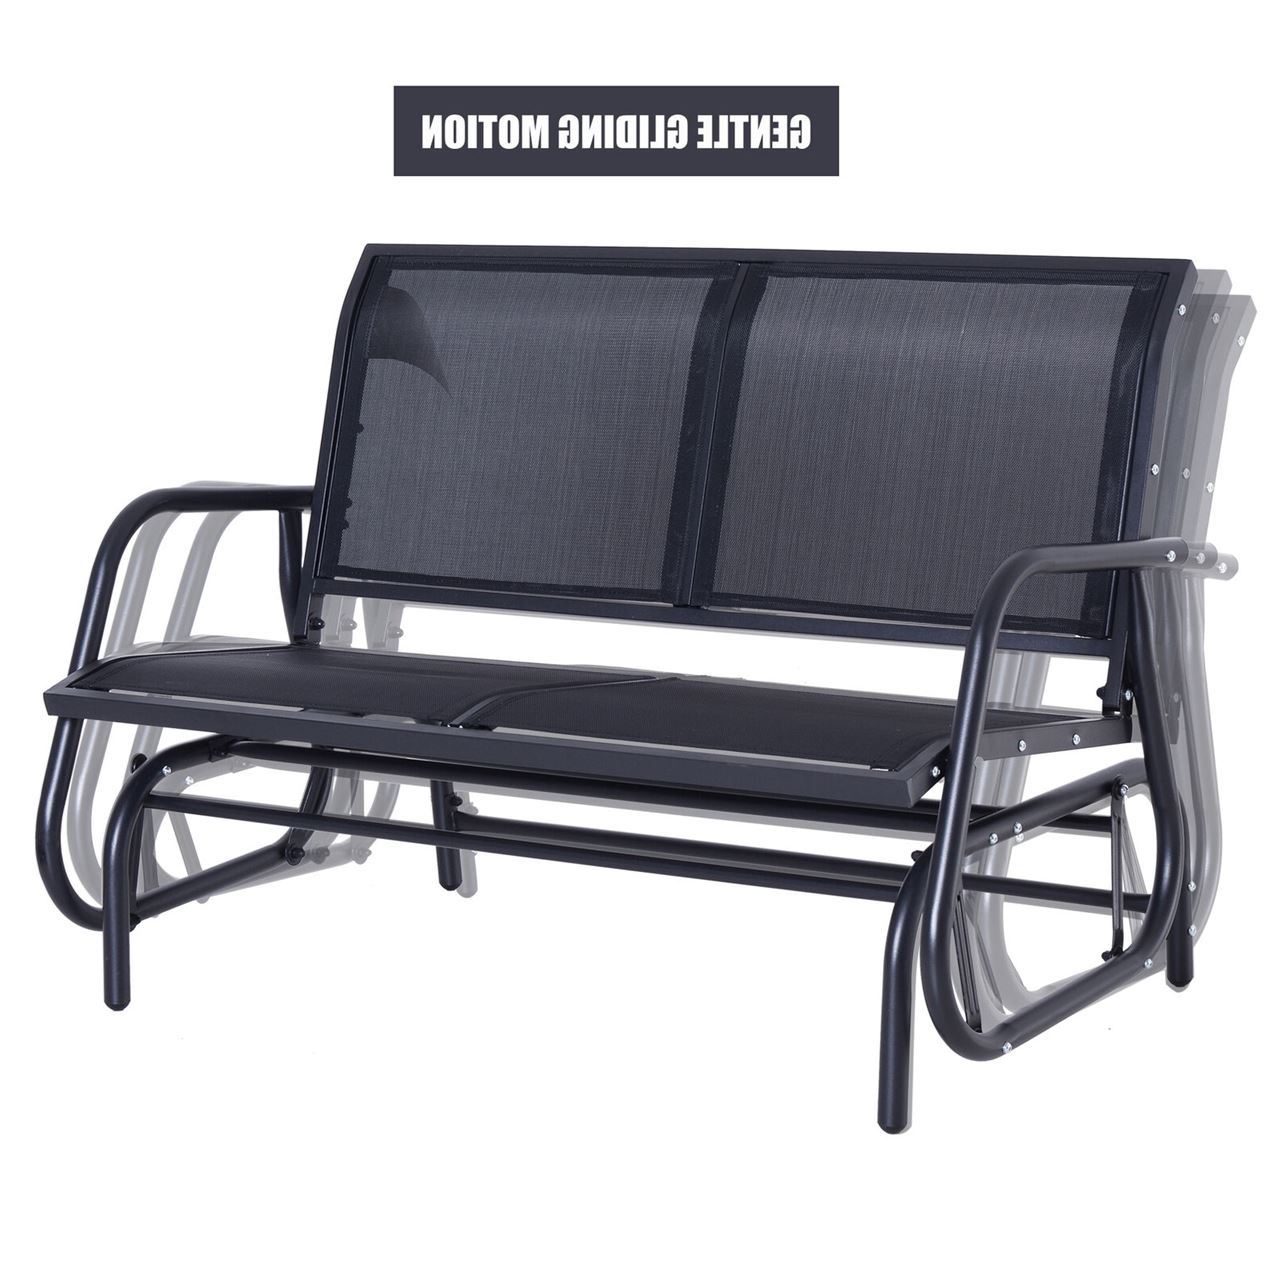 Most Current Outdoor Patio Swing Glider Bench Chair – Dark Gray Within Outdoor Patio Swing Glider Bench Chairs (View 19 of 30)